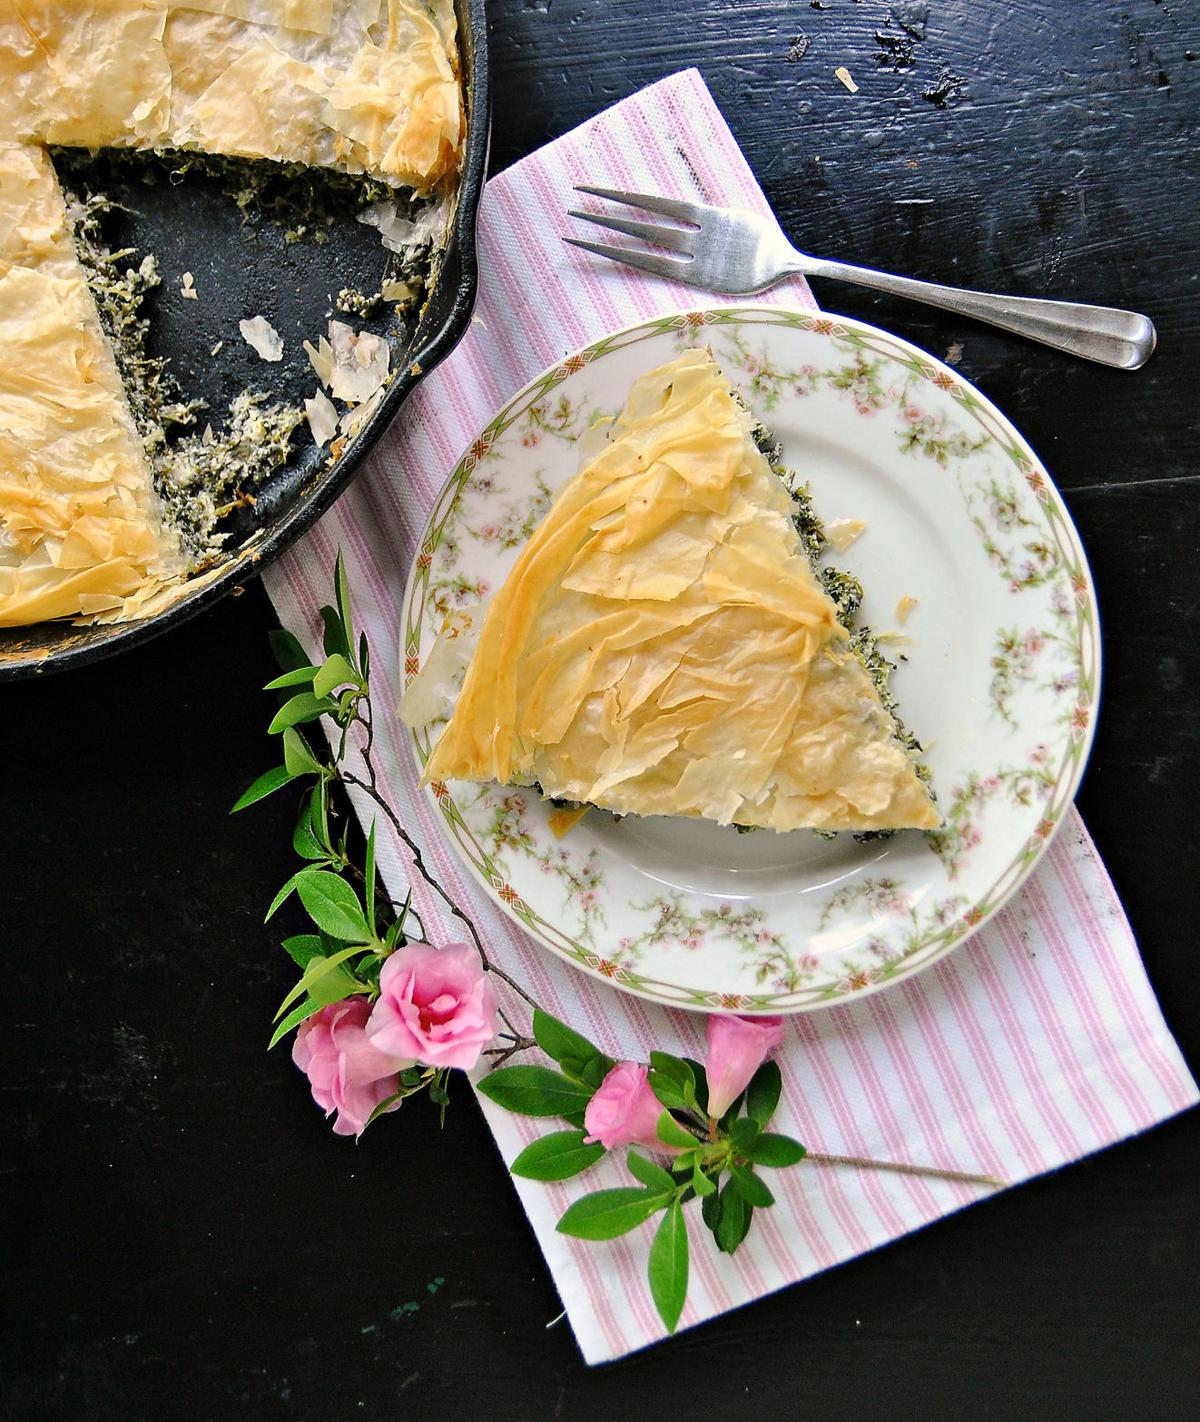 FOOD-HDY-MOTHERSDAY-SKILLET-SPINACHPIE-2-PG